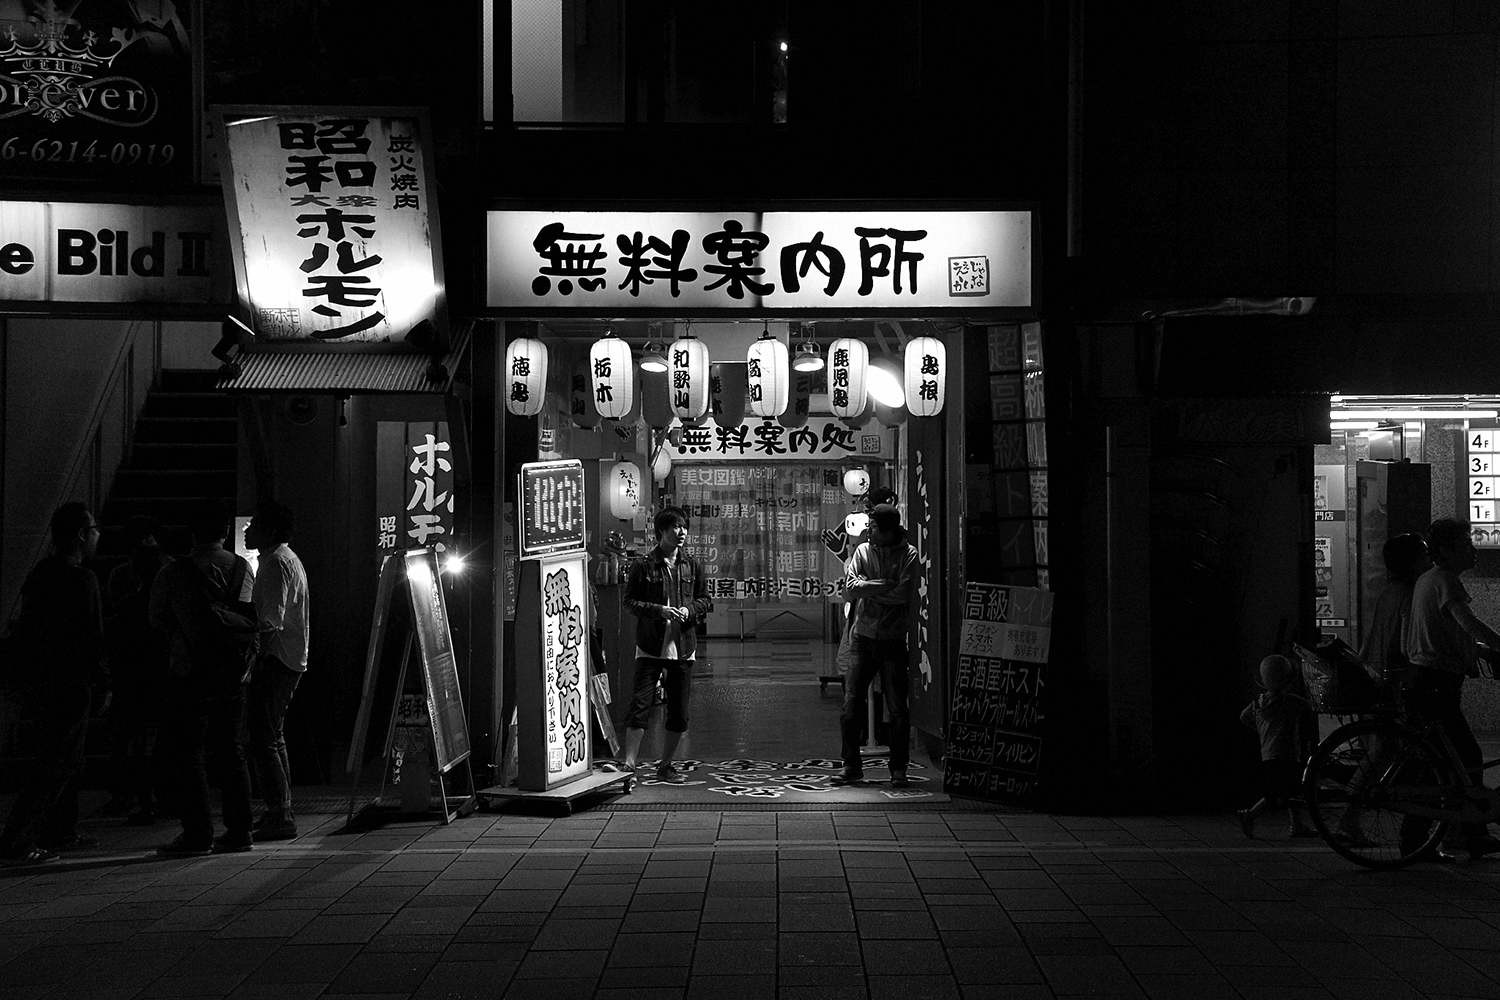 kyle_ellis_photography_japan_web_0006.jpg